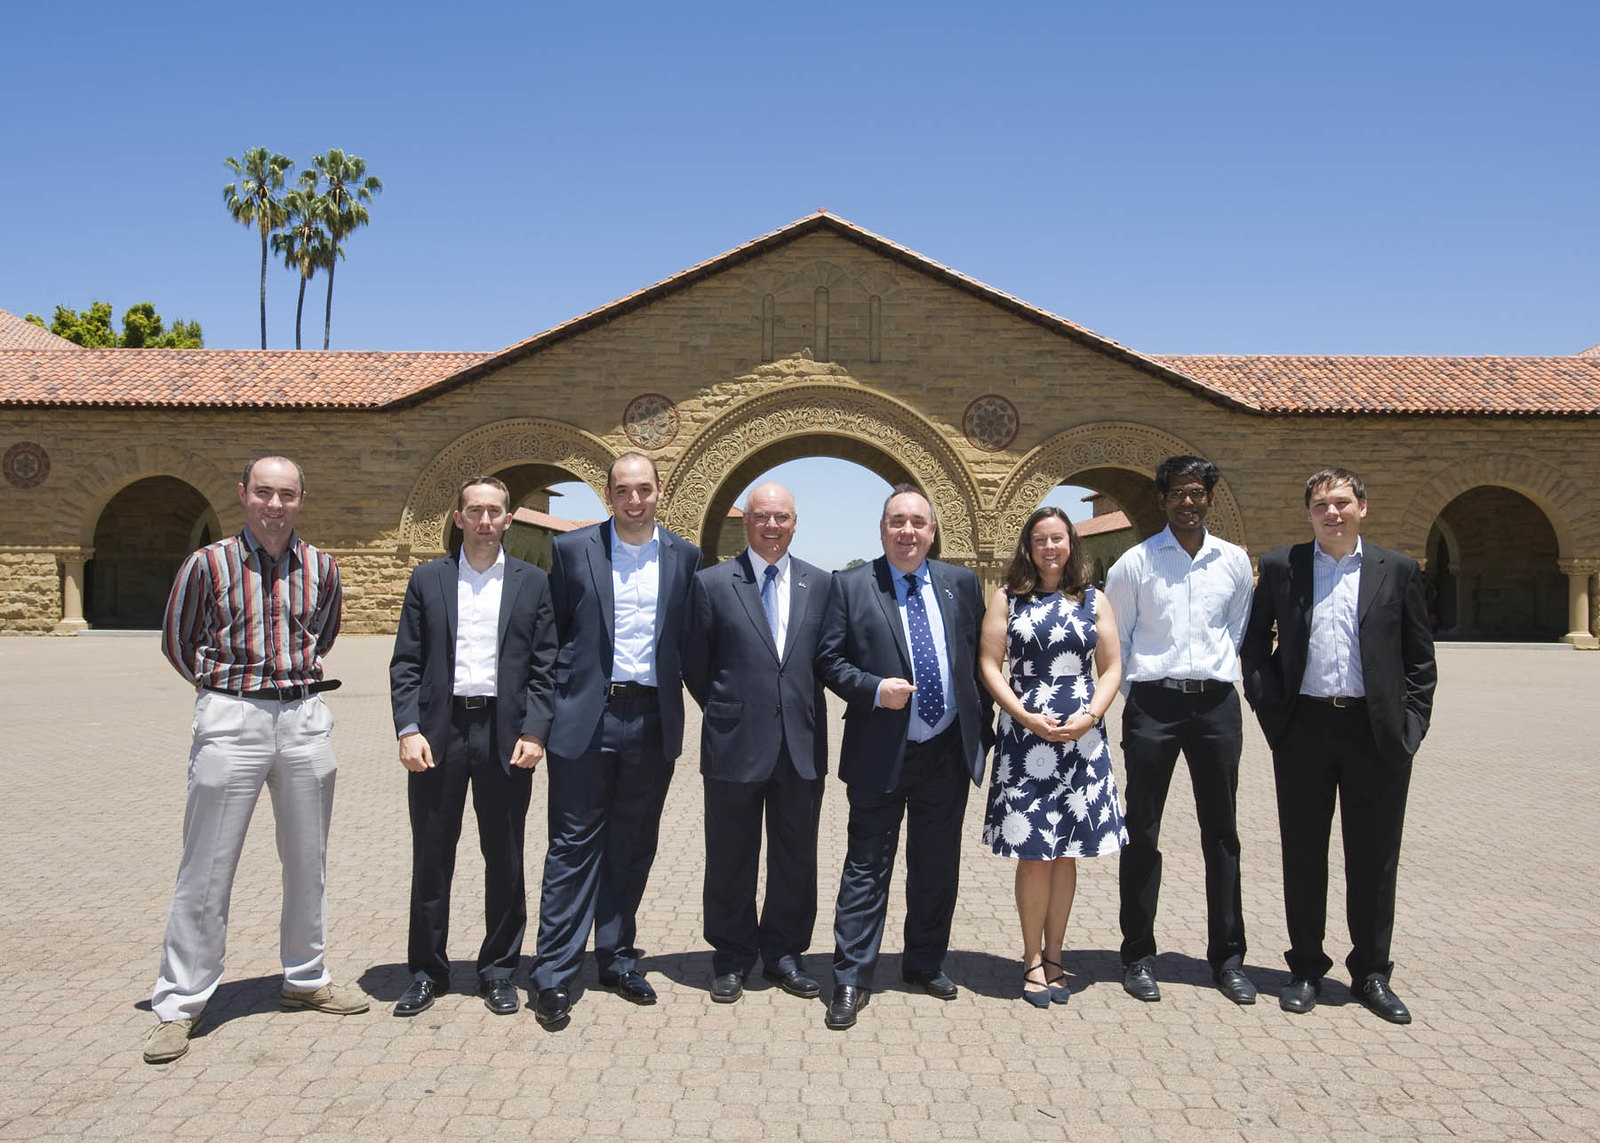 Stanford Canpus Tour